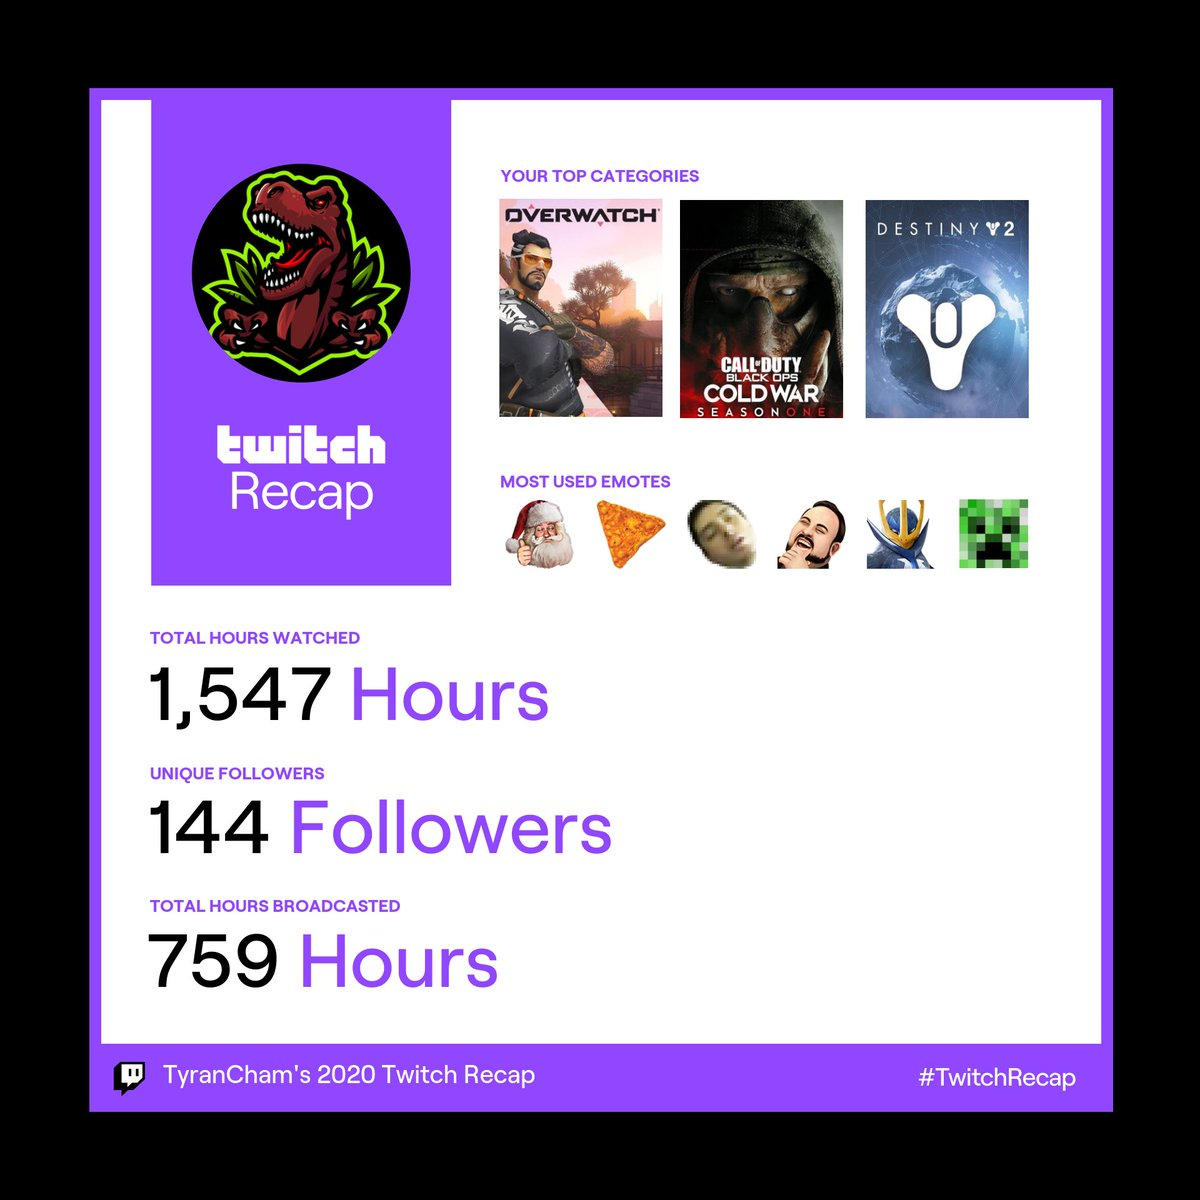 #twitchrecap well it's a bit late now but I just got this so Thank-you everyone for the biggest year so far for my channel all of my chat and supporters are amazing 🤩 let's make this year EVEN BETTER!!! #TwitchRecap2020 #twitchaffiliate #twitchstreamer